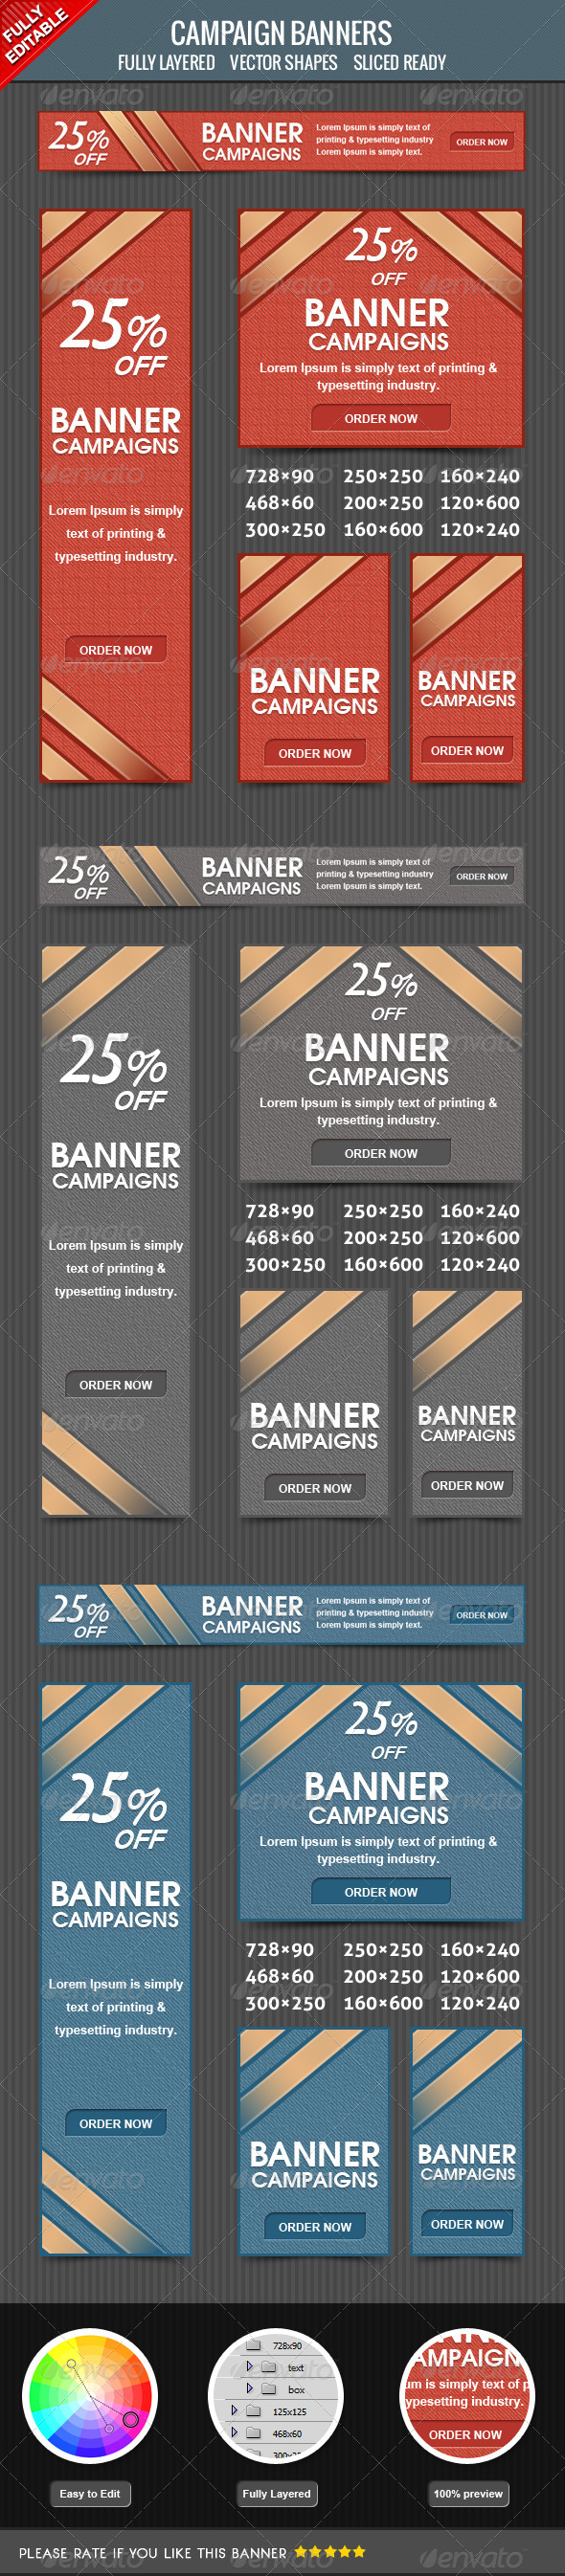 GraphicRiver Campaign Banners 4176337